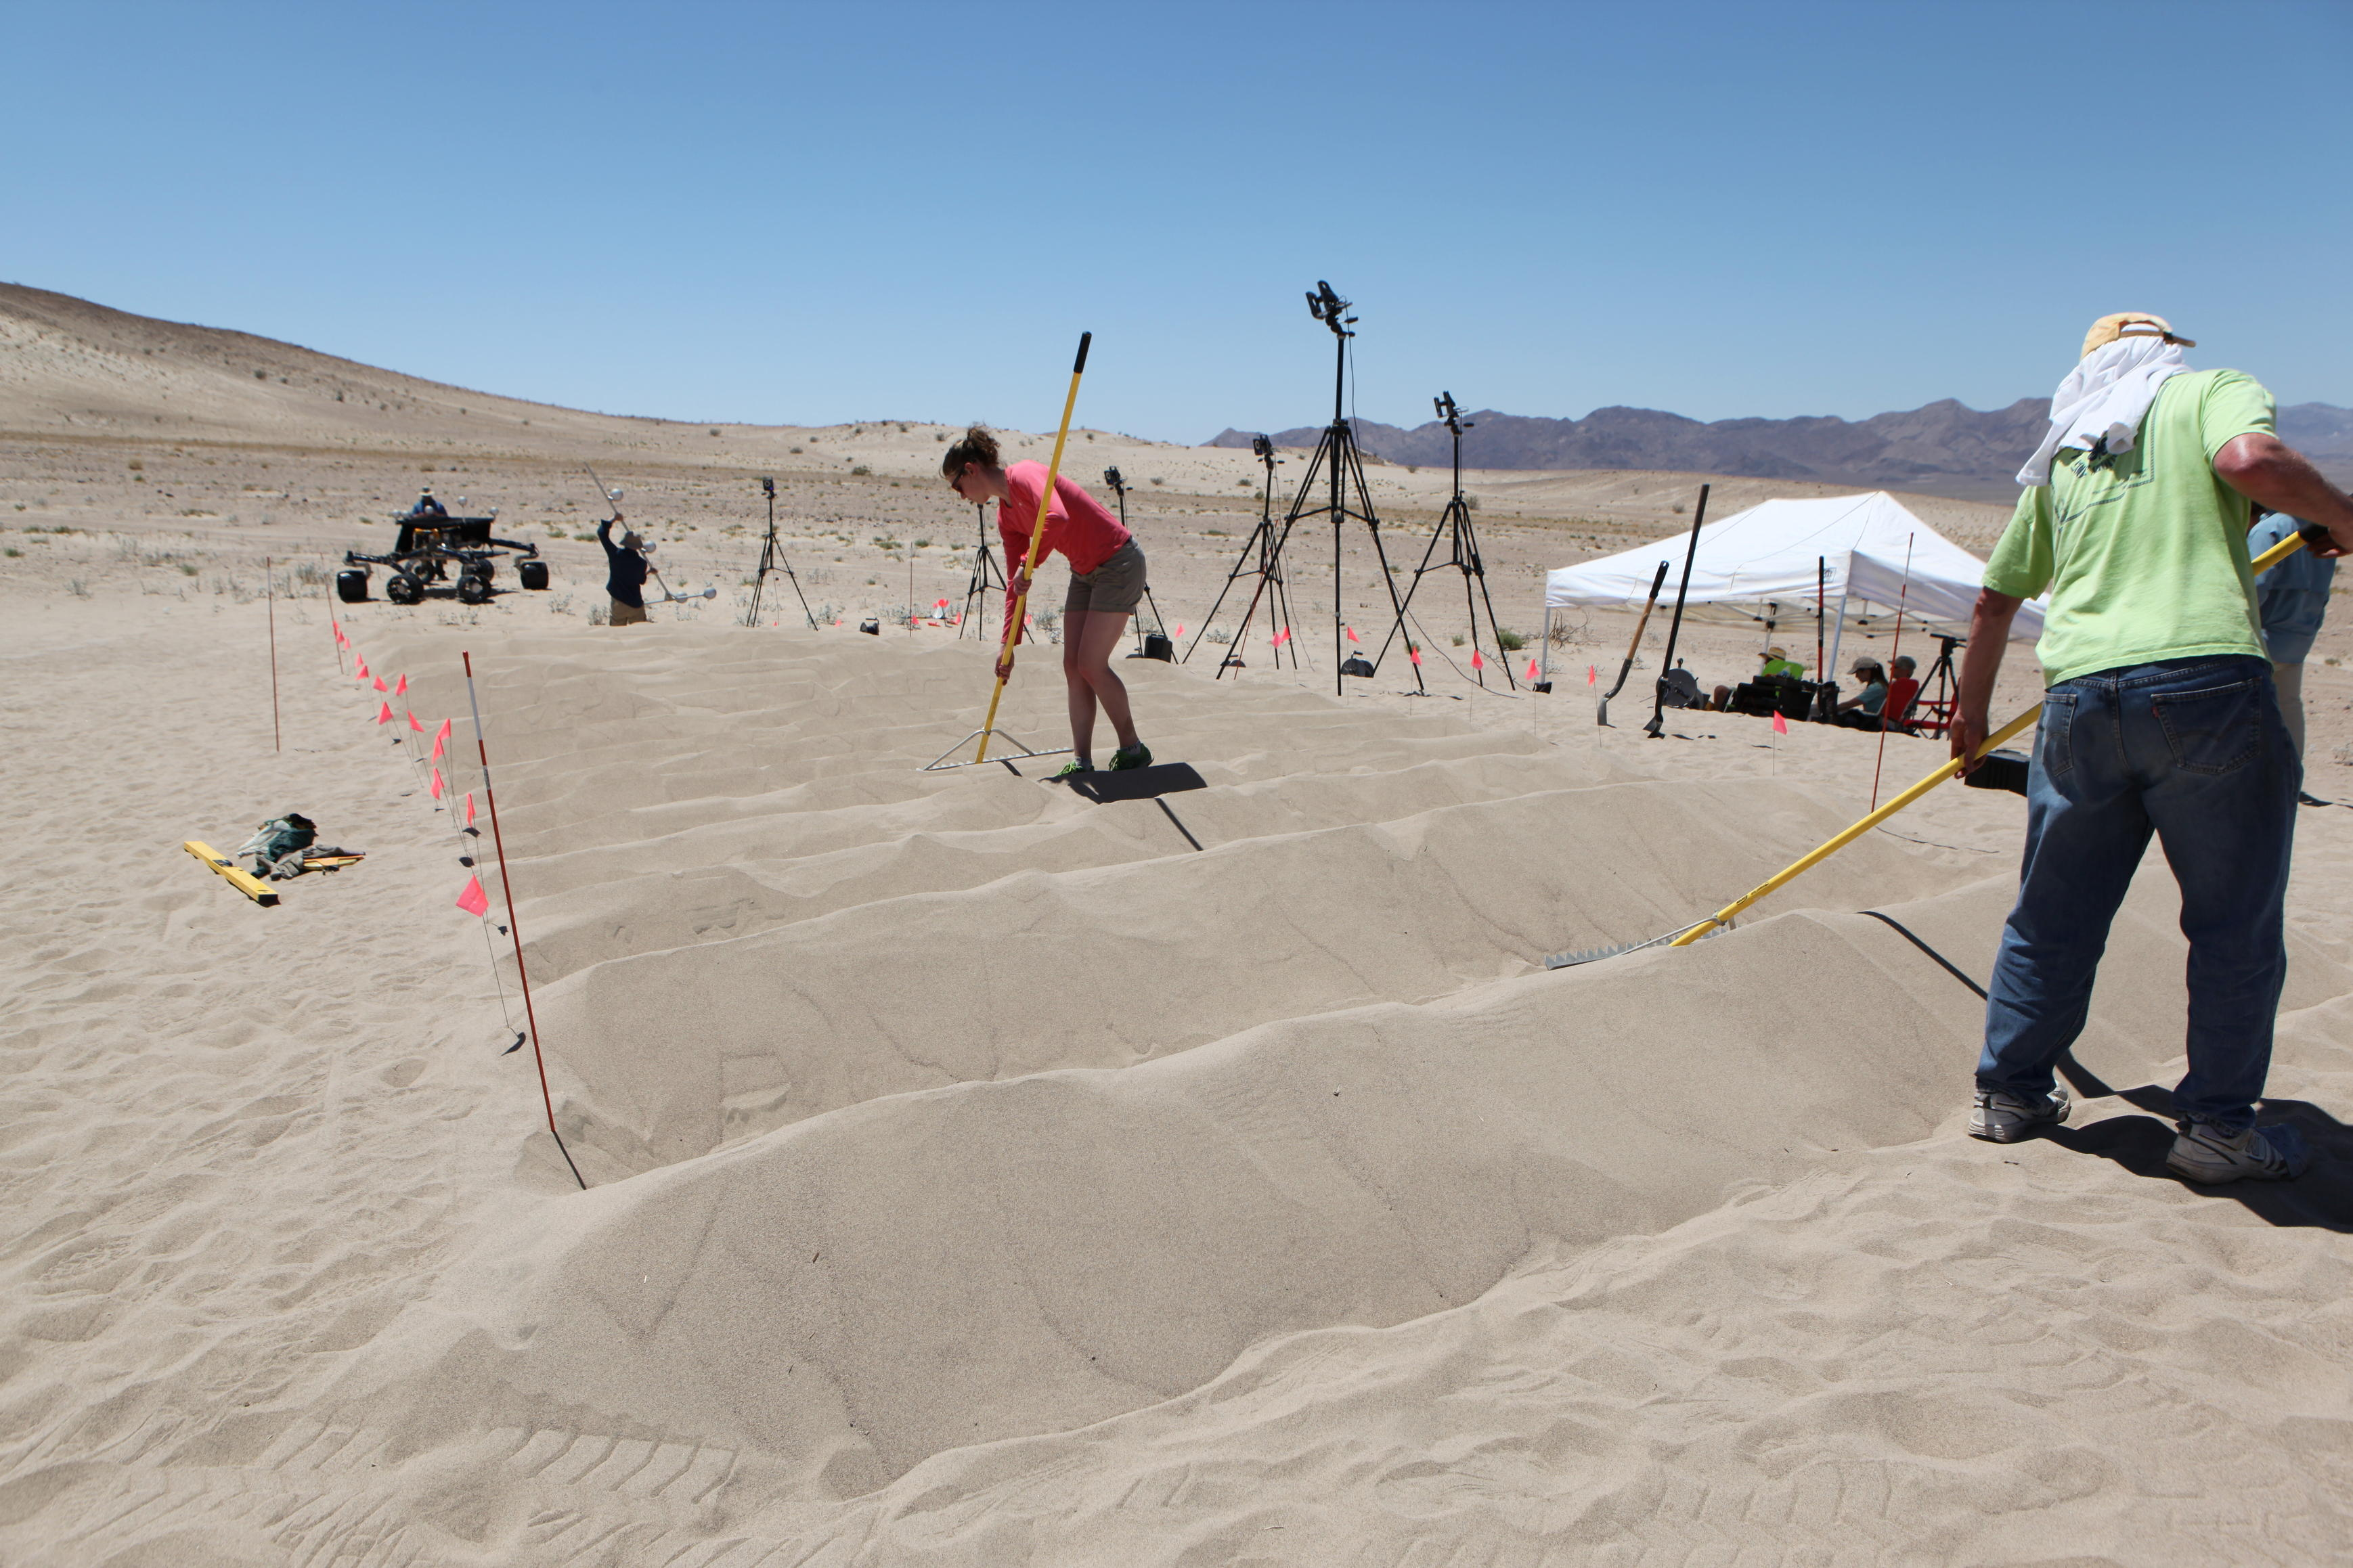 sand dune, mars rover, wheel, Dumont, Scarecrow, test - This image shows a row of uphill, white sand dunes that JPL engineers shape with long rakes for desert rover test, under blue skies.  The Scarecrow rover sits at the bottom, waiting to be tested.